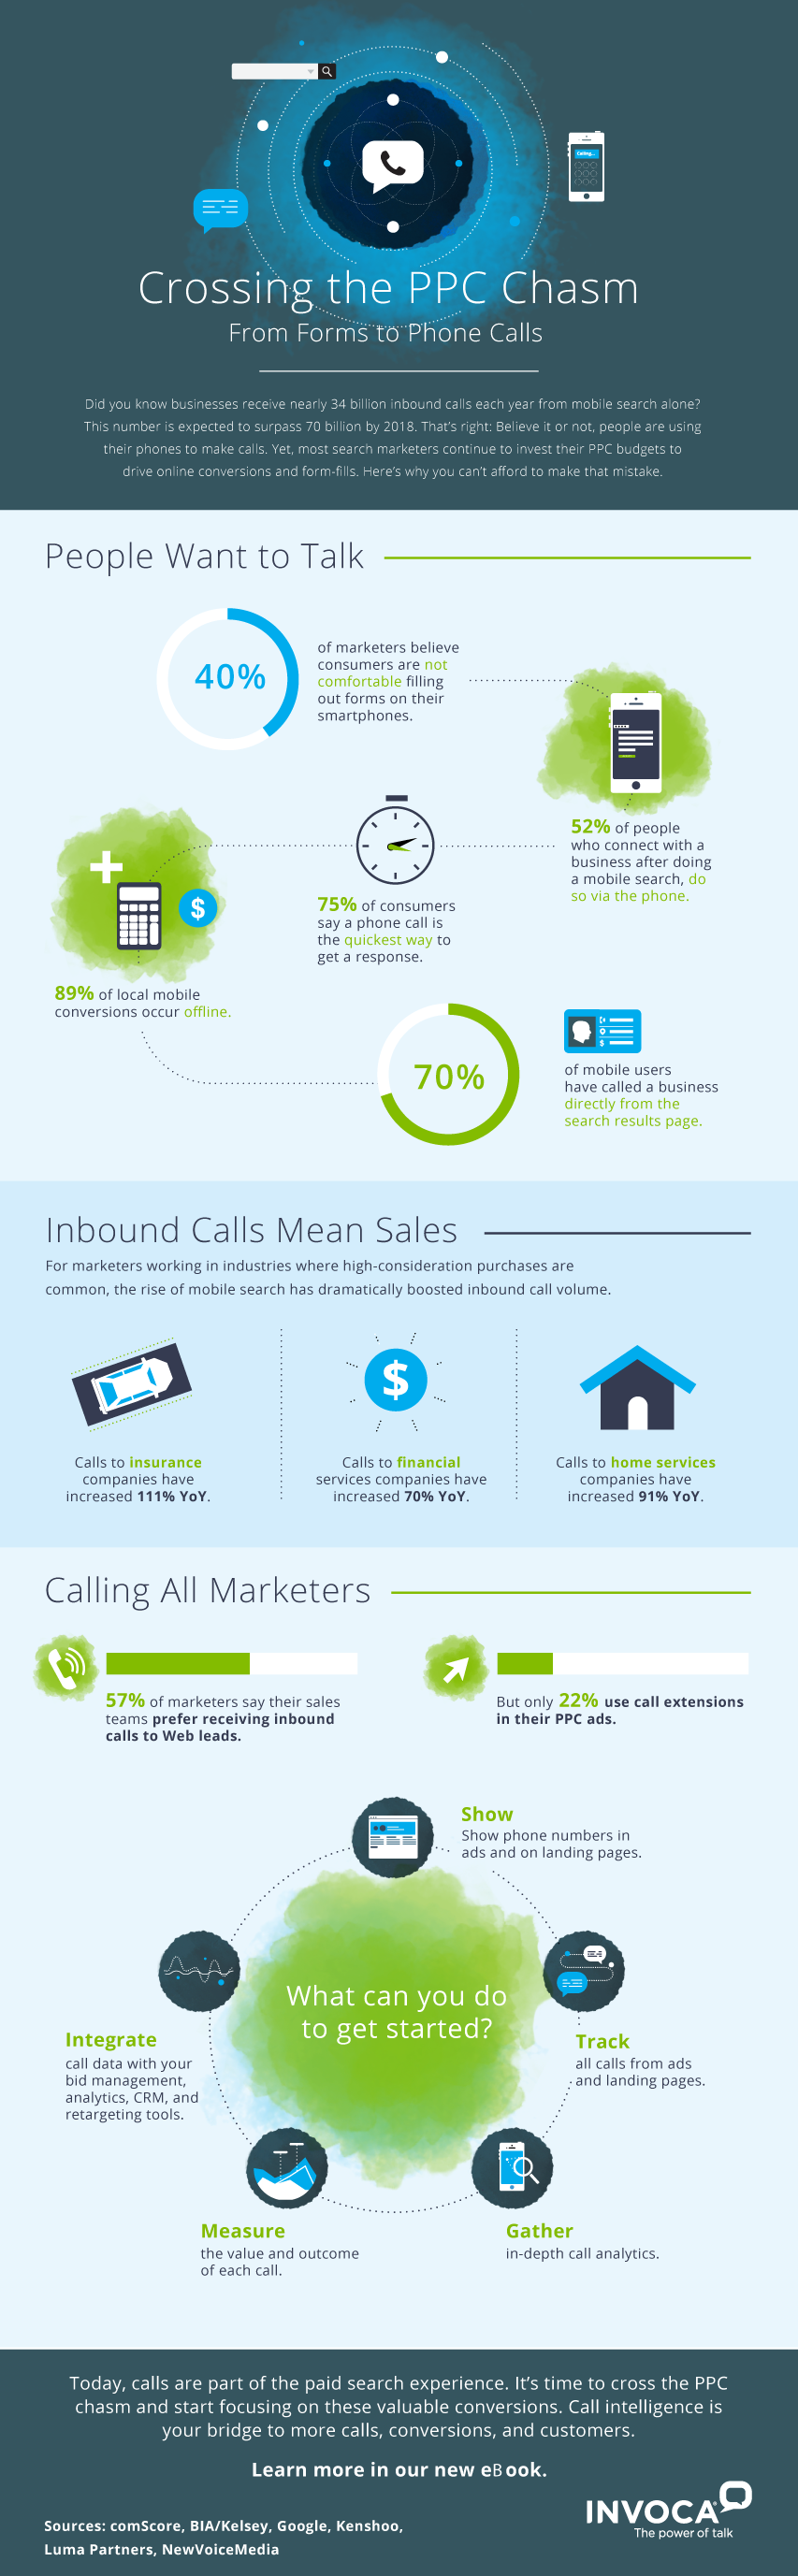 Crossing the PPC Chasm From Forms to Phone Calls #infographic